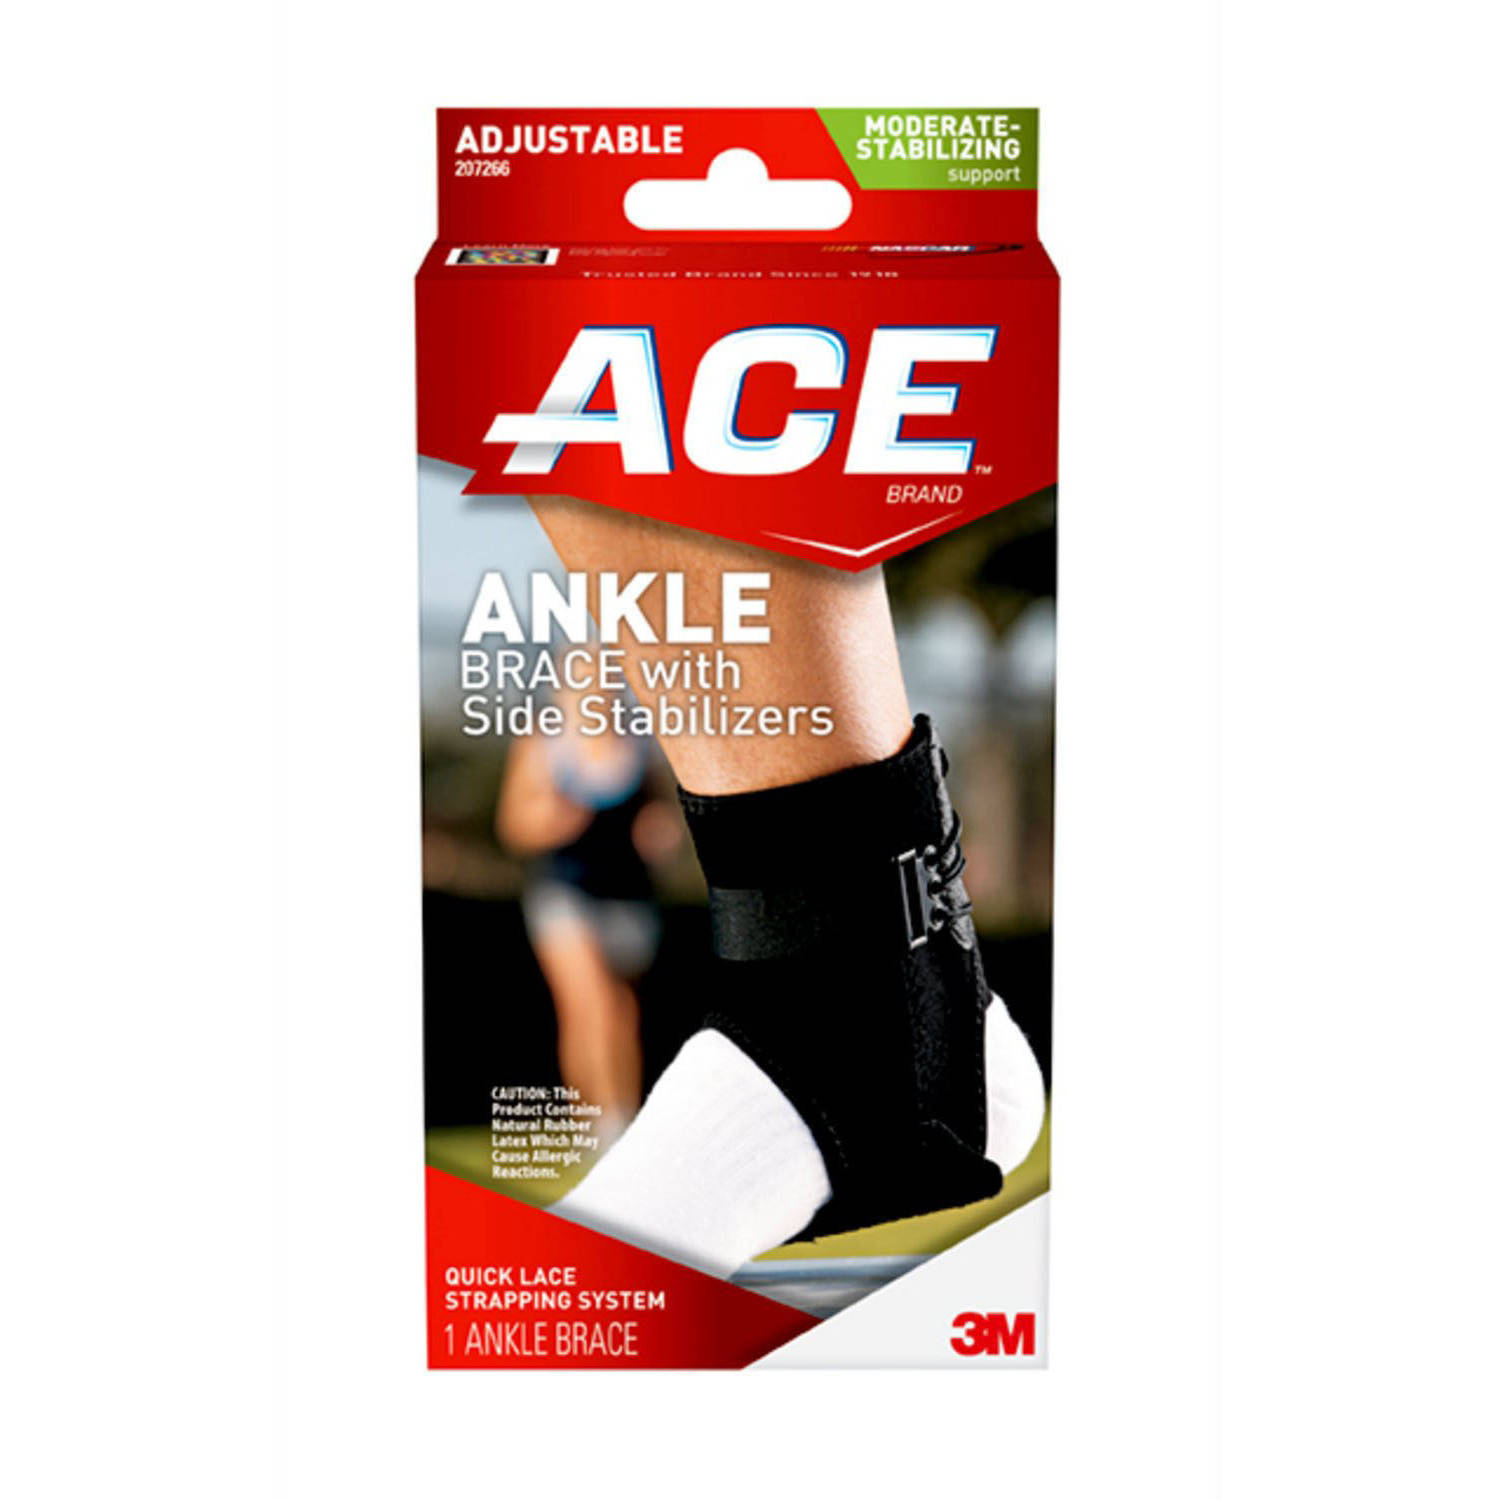 ACE Brand Ankle Brace with Side Stabilizers, One Size, Adjustable